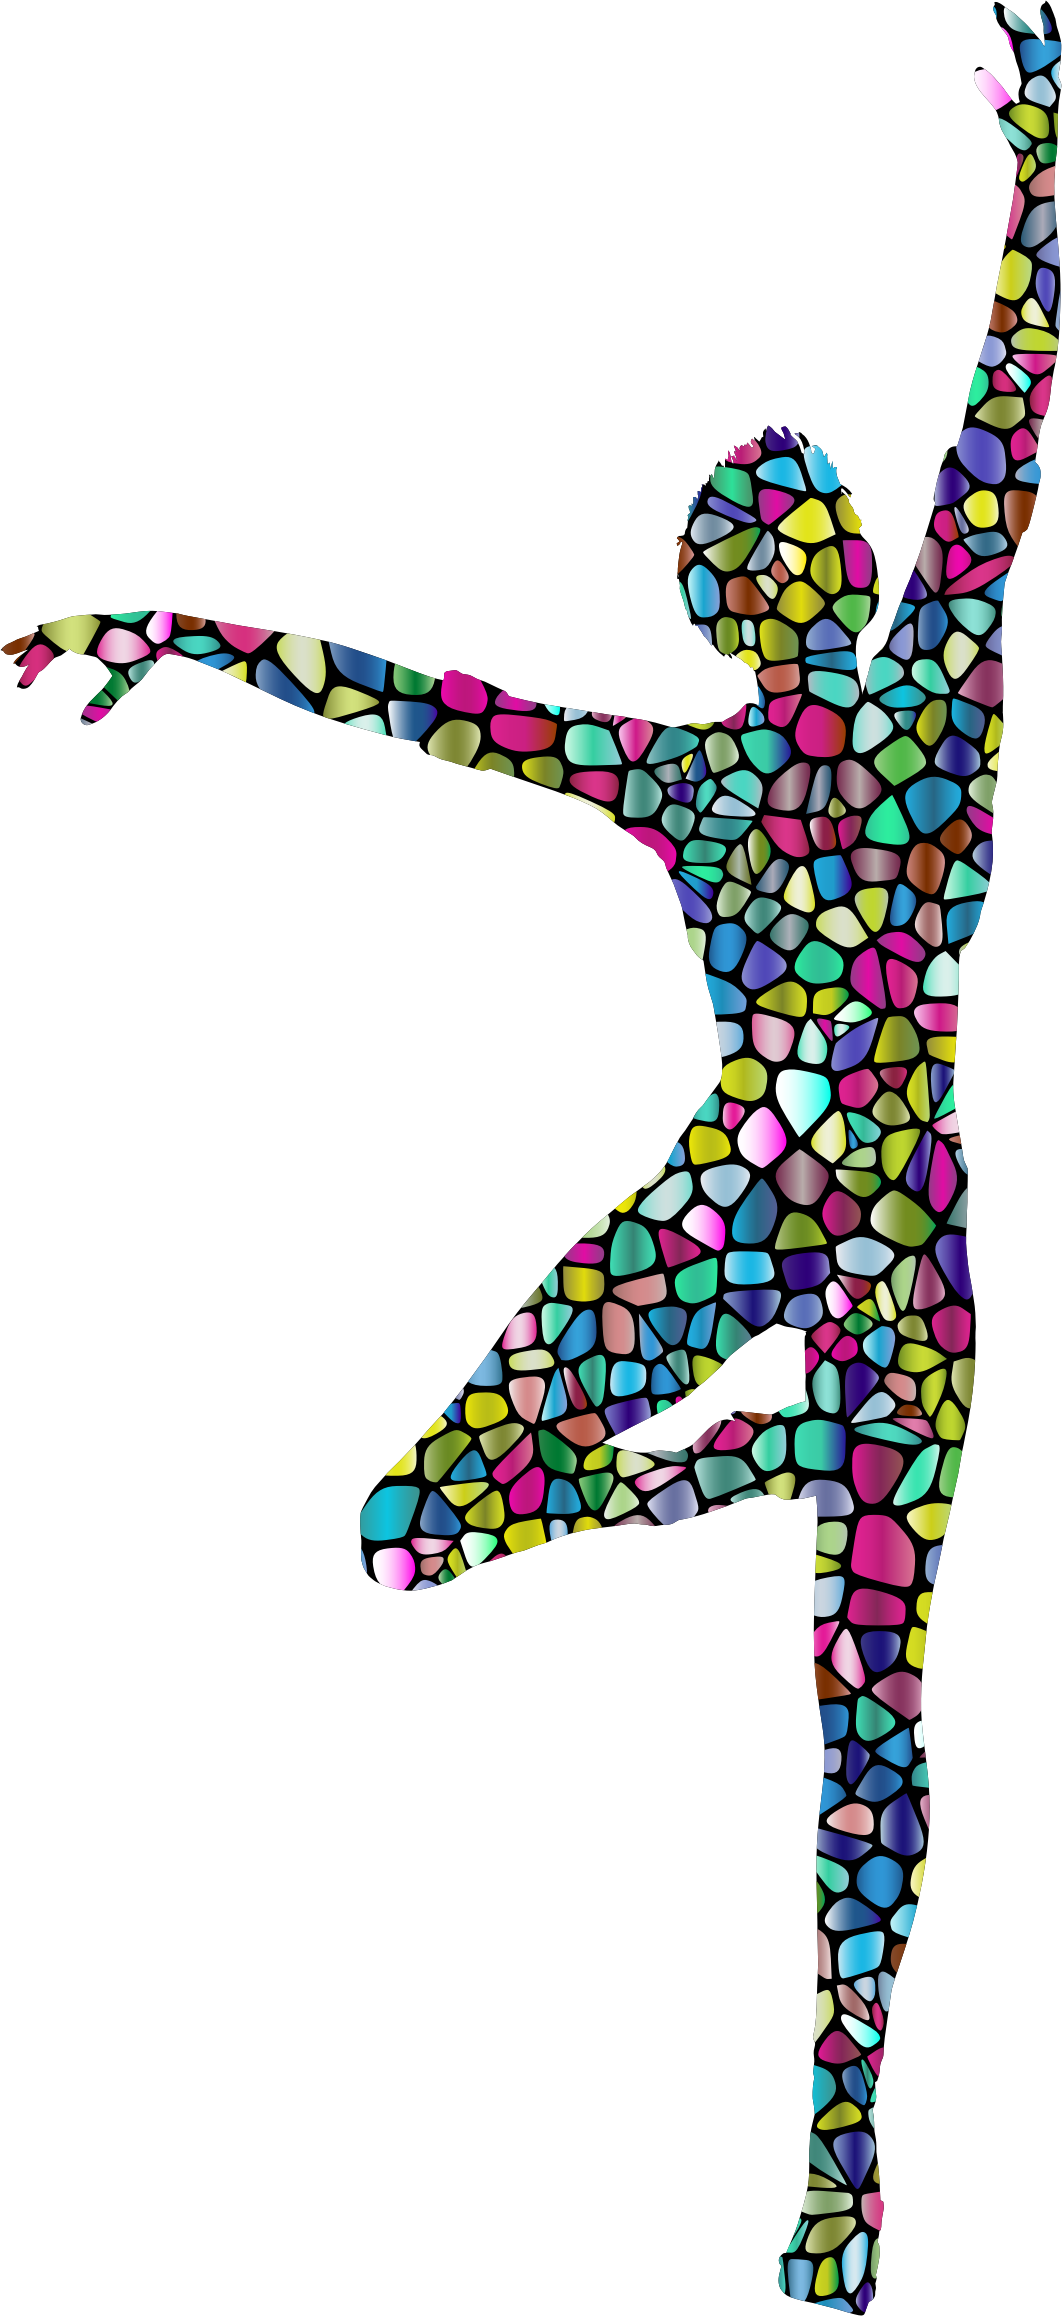 Girl dancing silhouette png. Clipart polyprismatic tiled woman